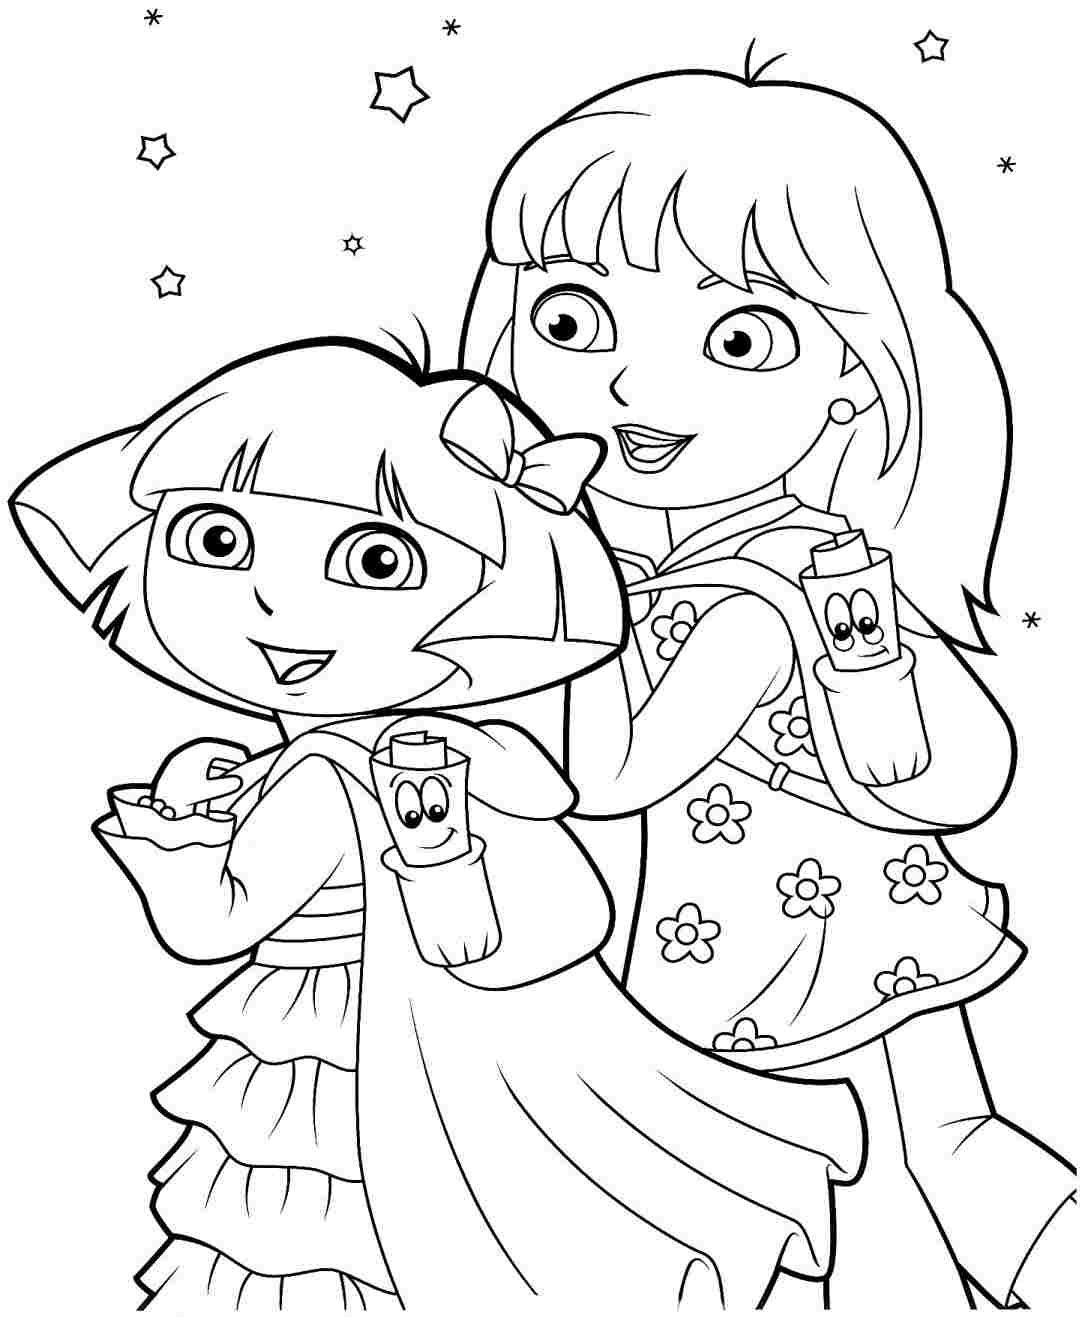 Printable Free Coloring Pages Cartoon Dora The Explorer And Friends For Boys Girls 30315 Coloring Pages Hello Kitty Colouring Pages Cool Coloring Pages